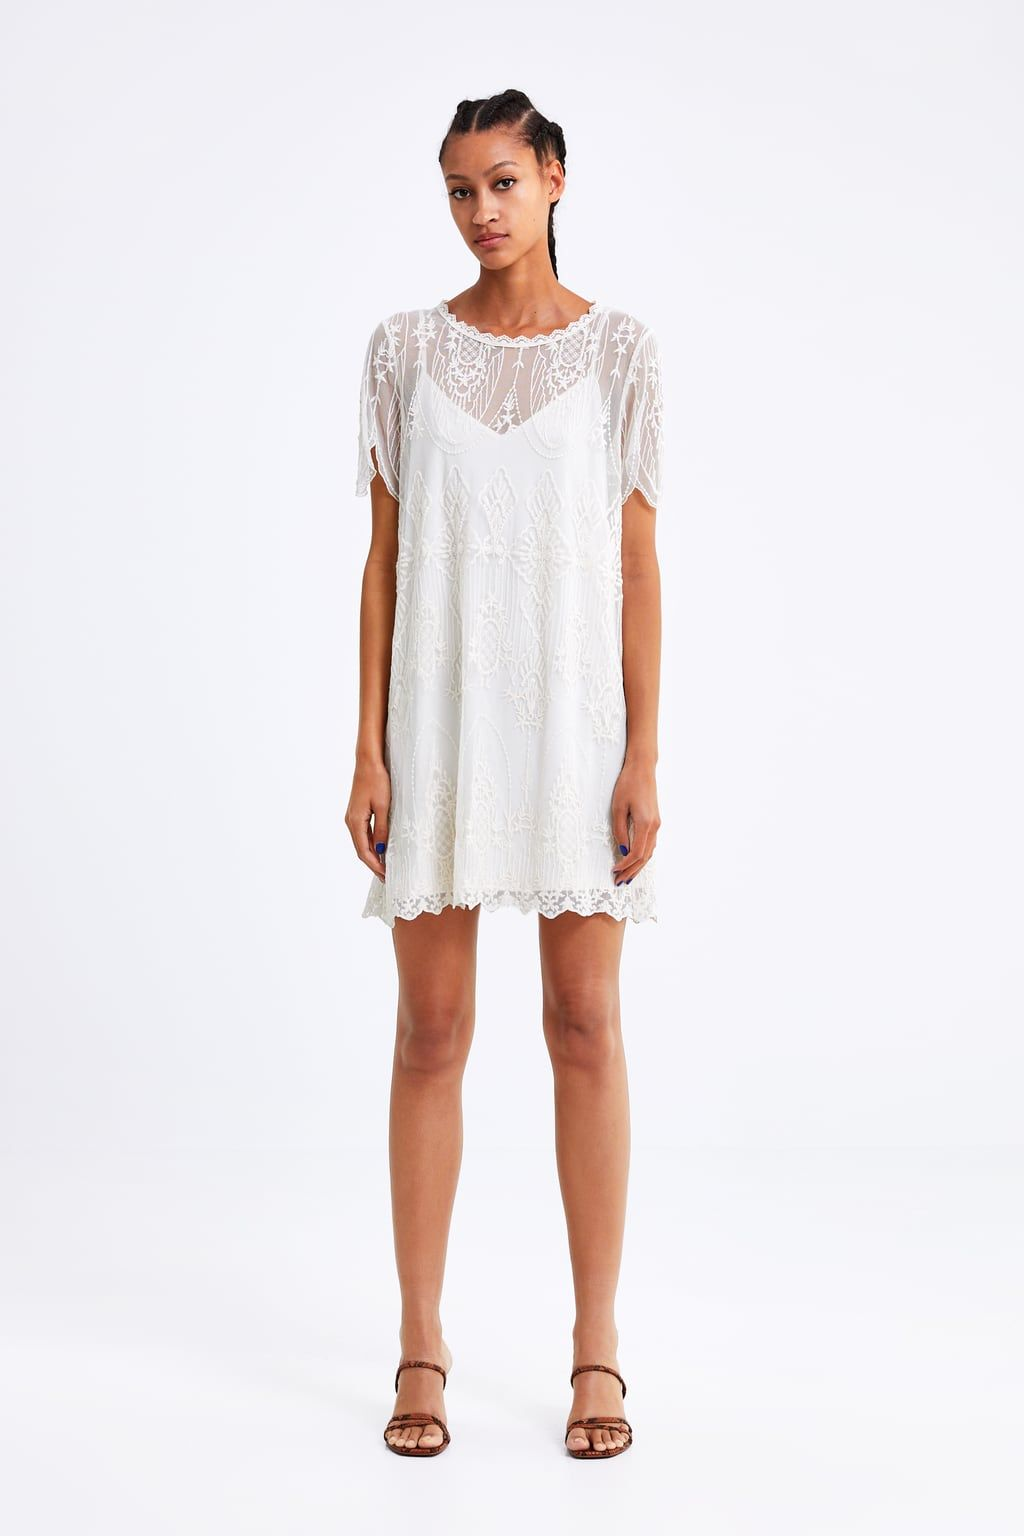 EMBROIDERED DRESS,View all,DRESSES,WOMAN